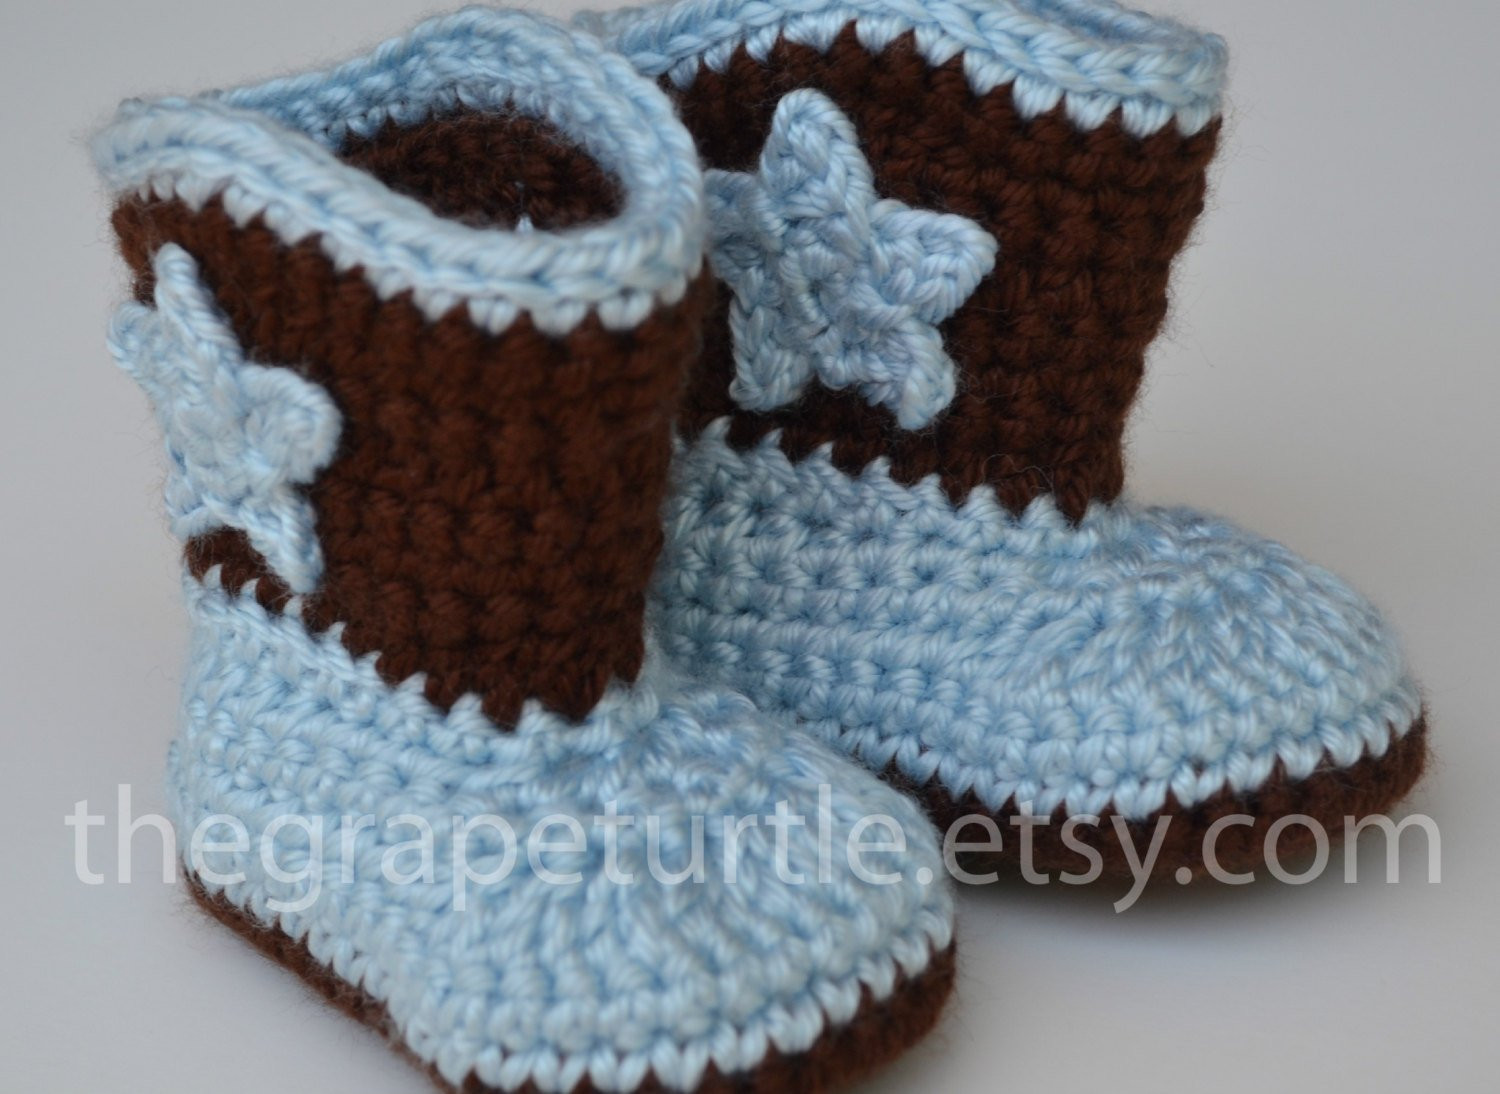 Crochet Cowboy Boots Inspirational Crochet Baby Cowboy Boots Made to order You by thegrapeturtle Of Marvelous 49 Pictures Crochet Cowboy Boots